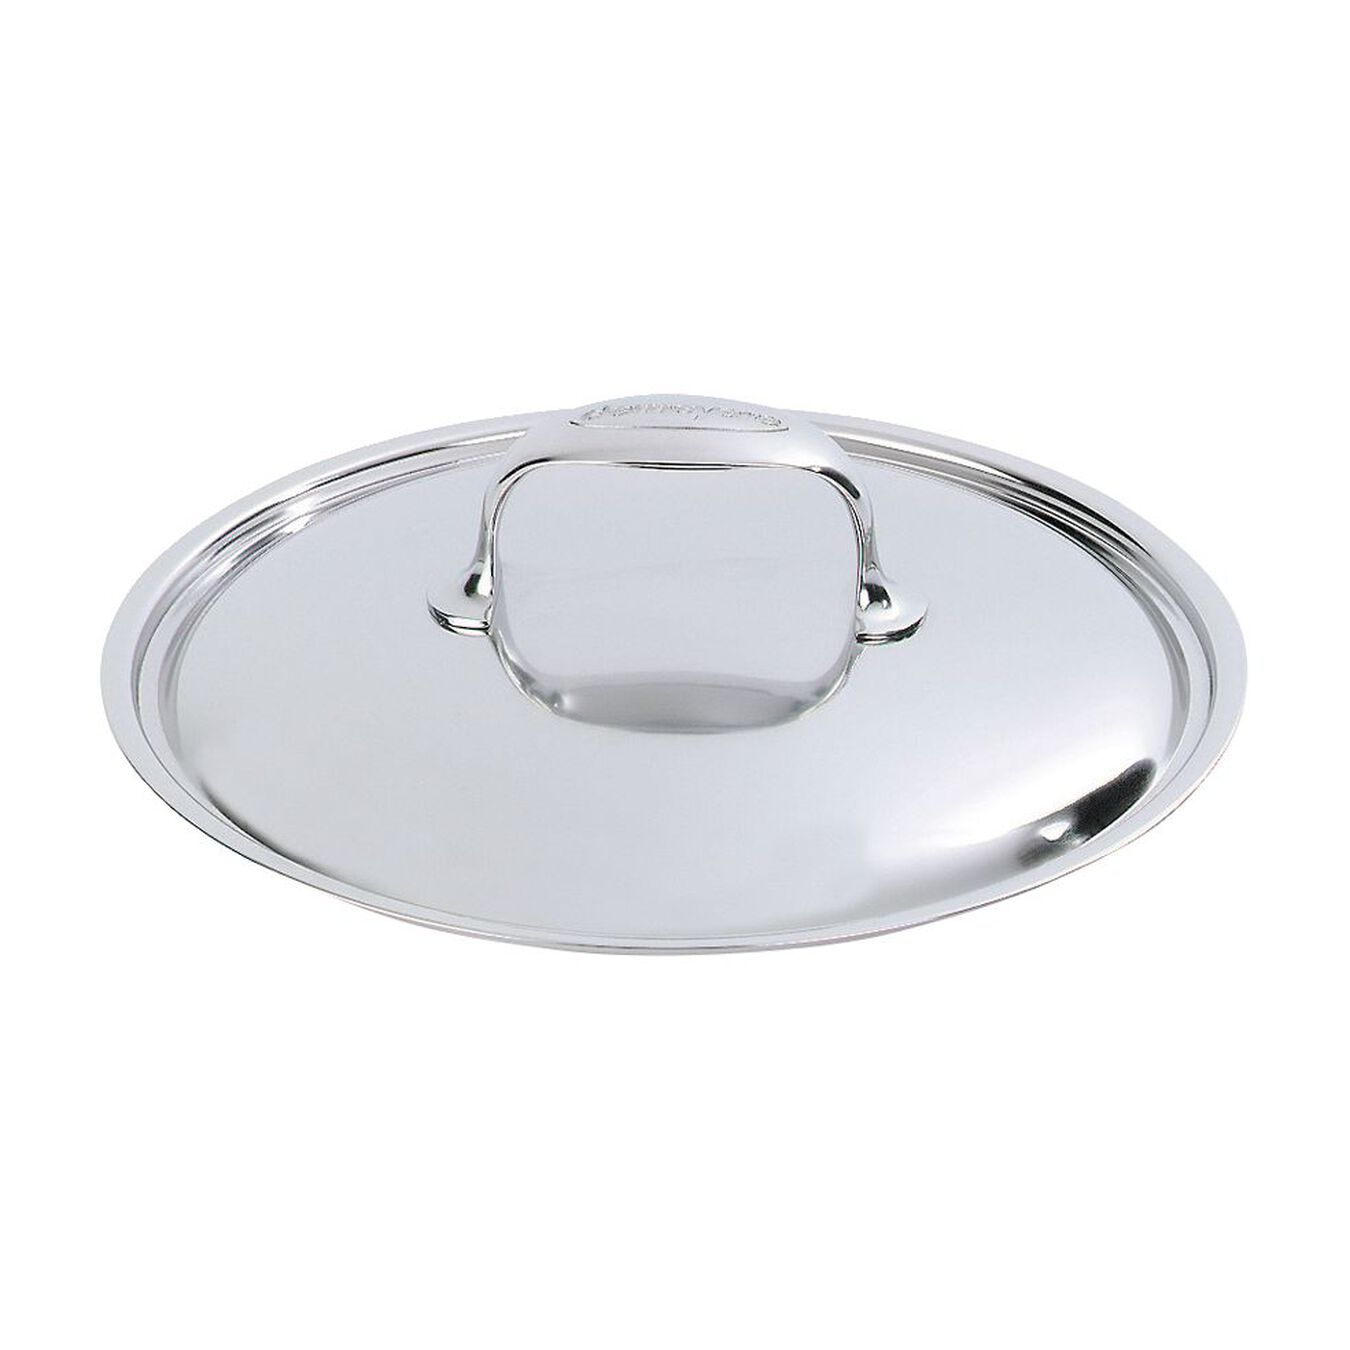 Couvercle, Rond(e)   Inox 18/10,,large 1